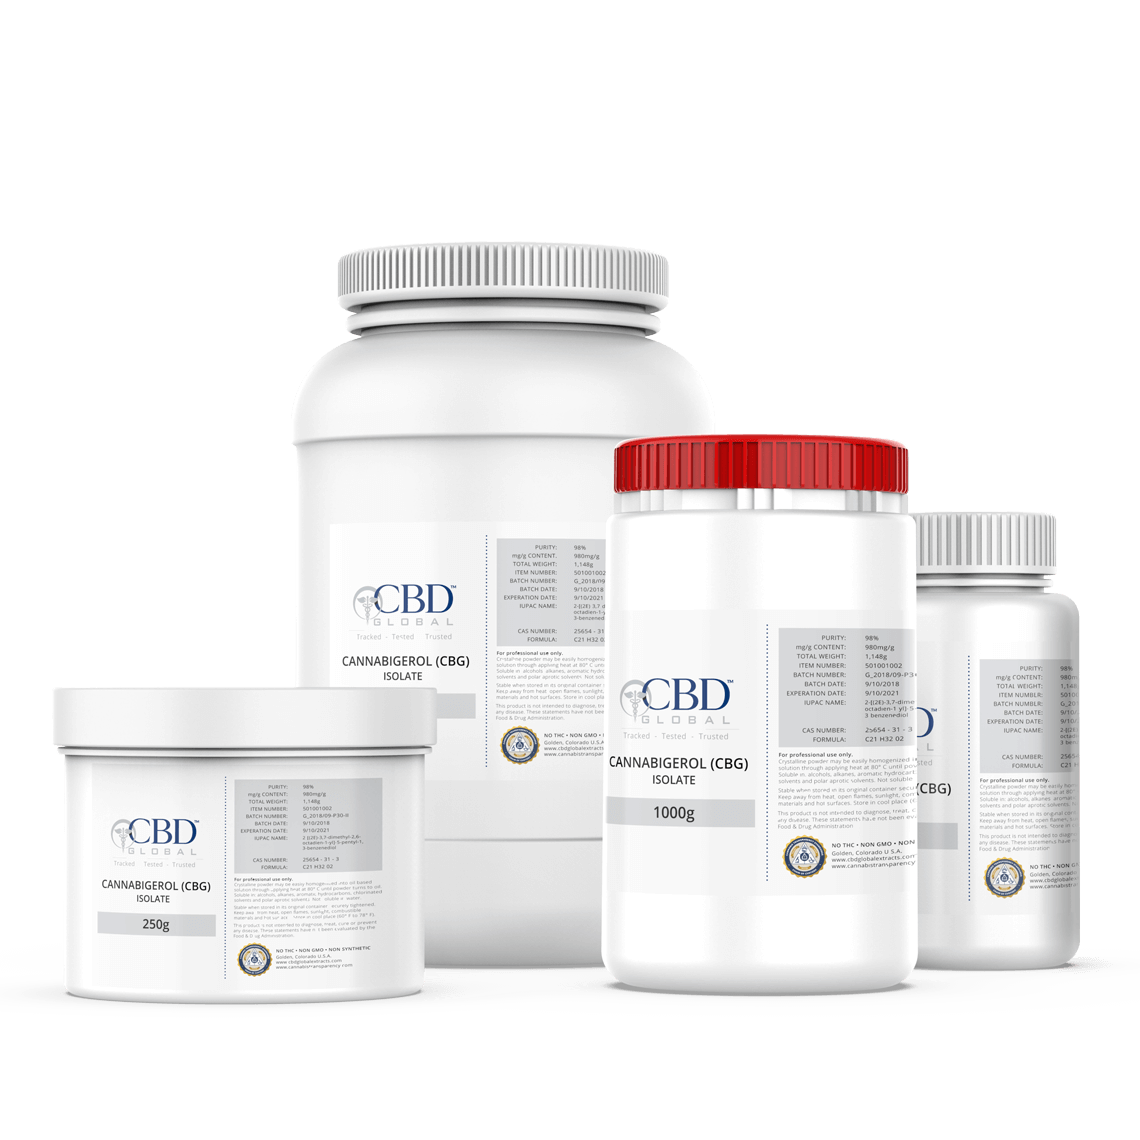 CBG Oil Isolate Bulk CBD Global